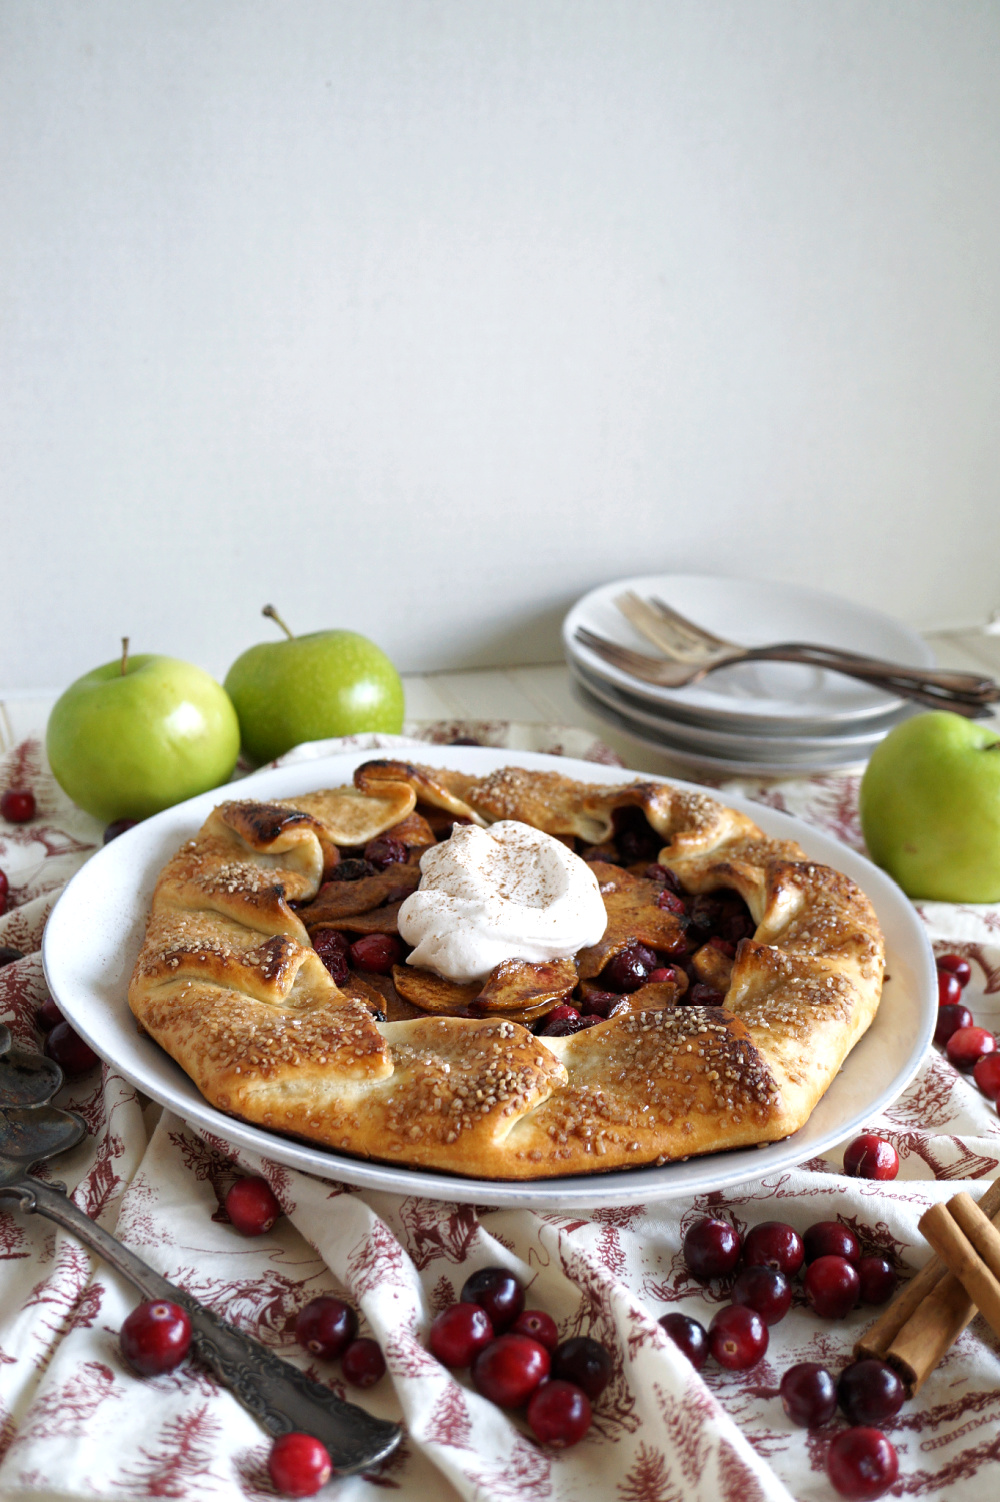 apple cranberry galette on plate with whipped cream